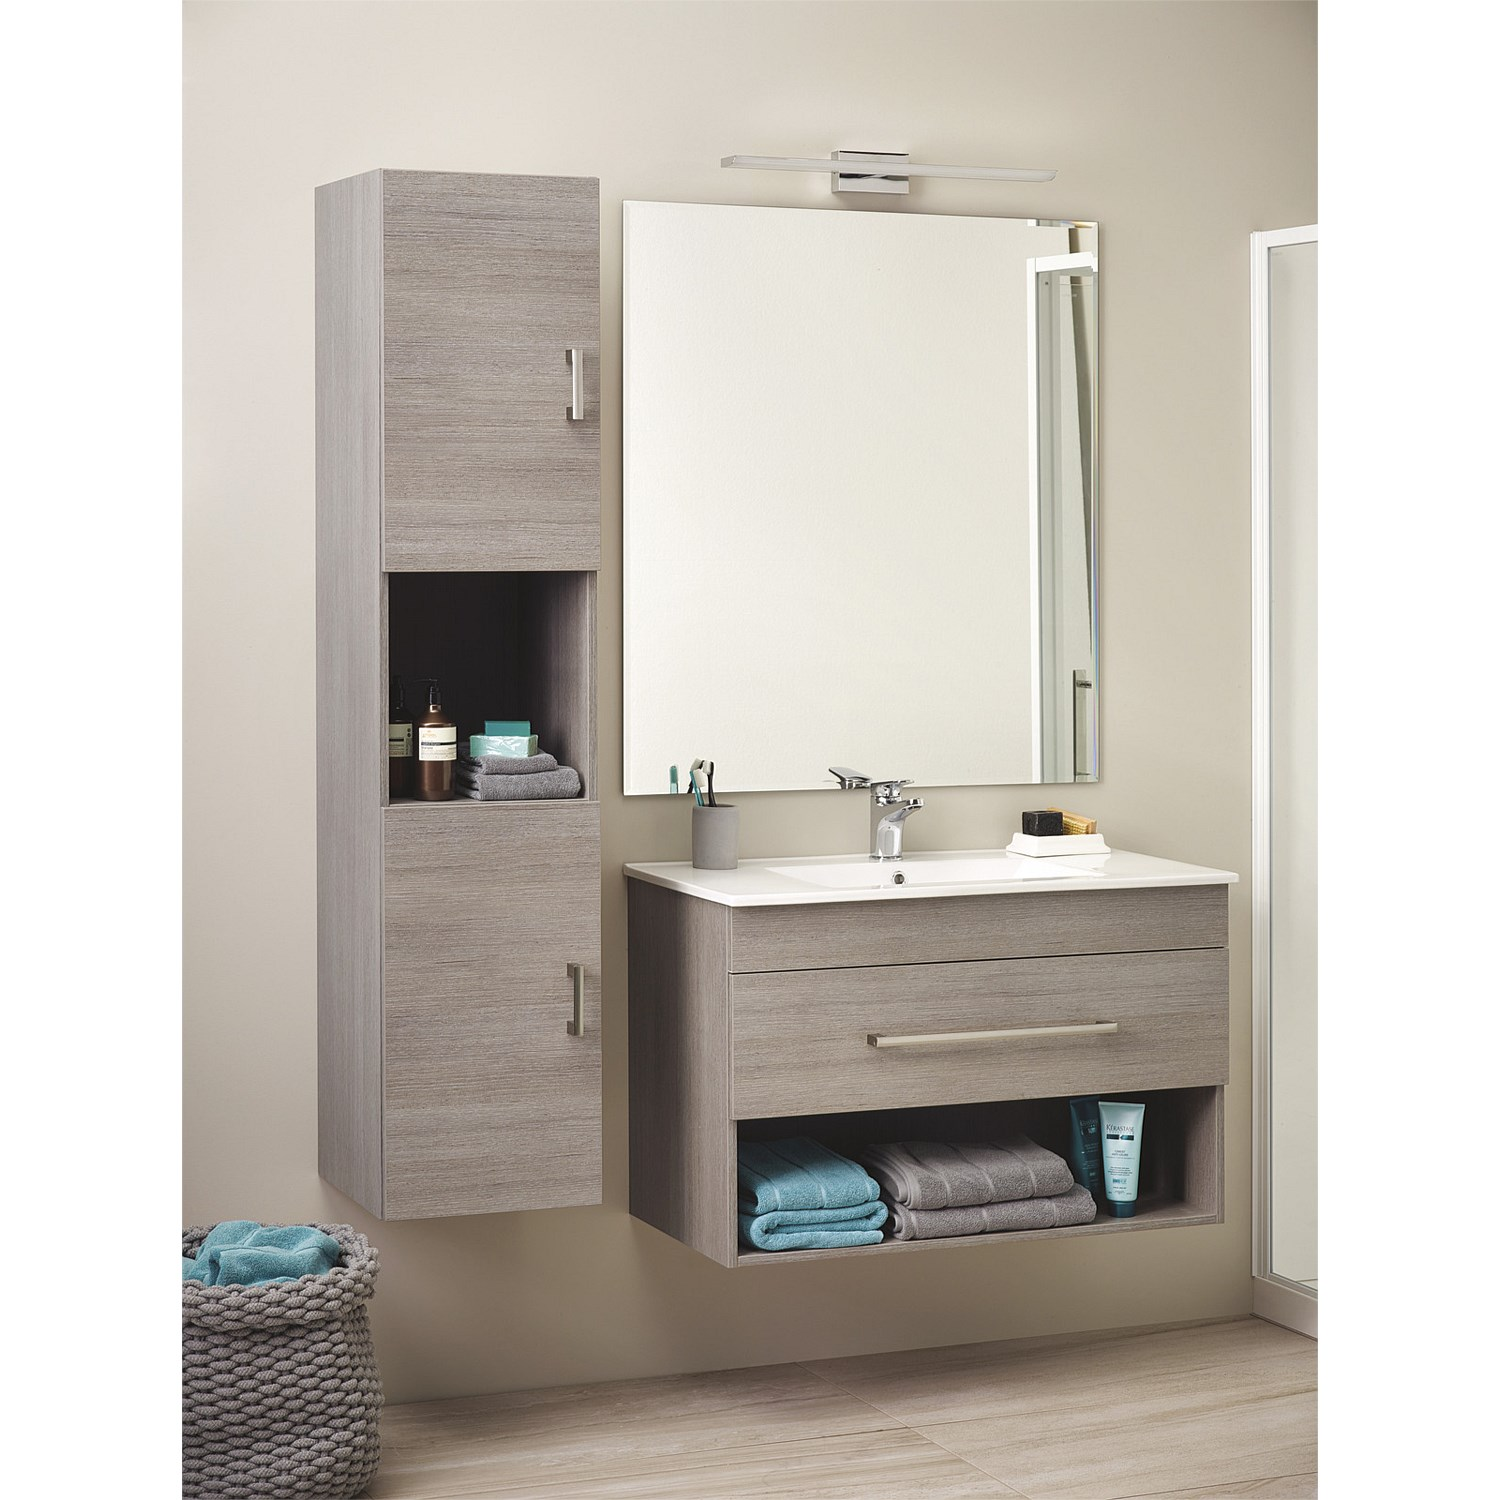 Clearlite Cashmere Classic 900mm Wall Hung Vanity